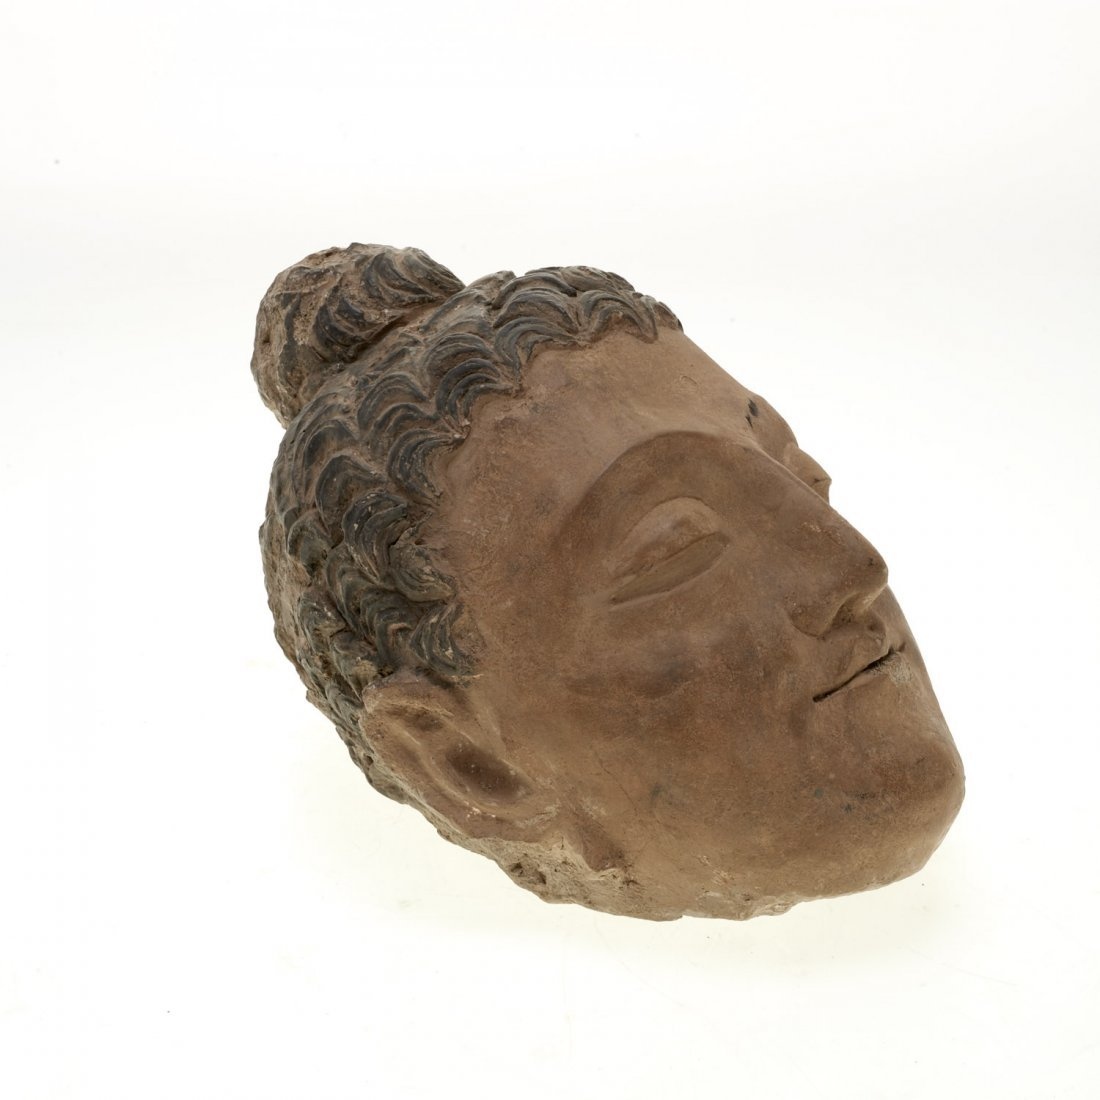 Asian polychromed stucco Buddha head fragment - 3